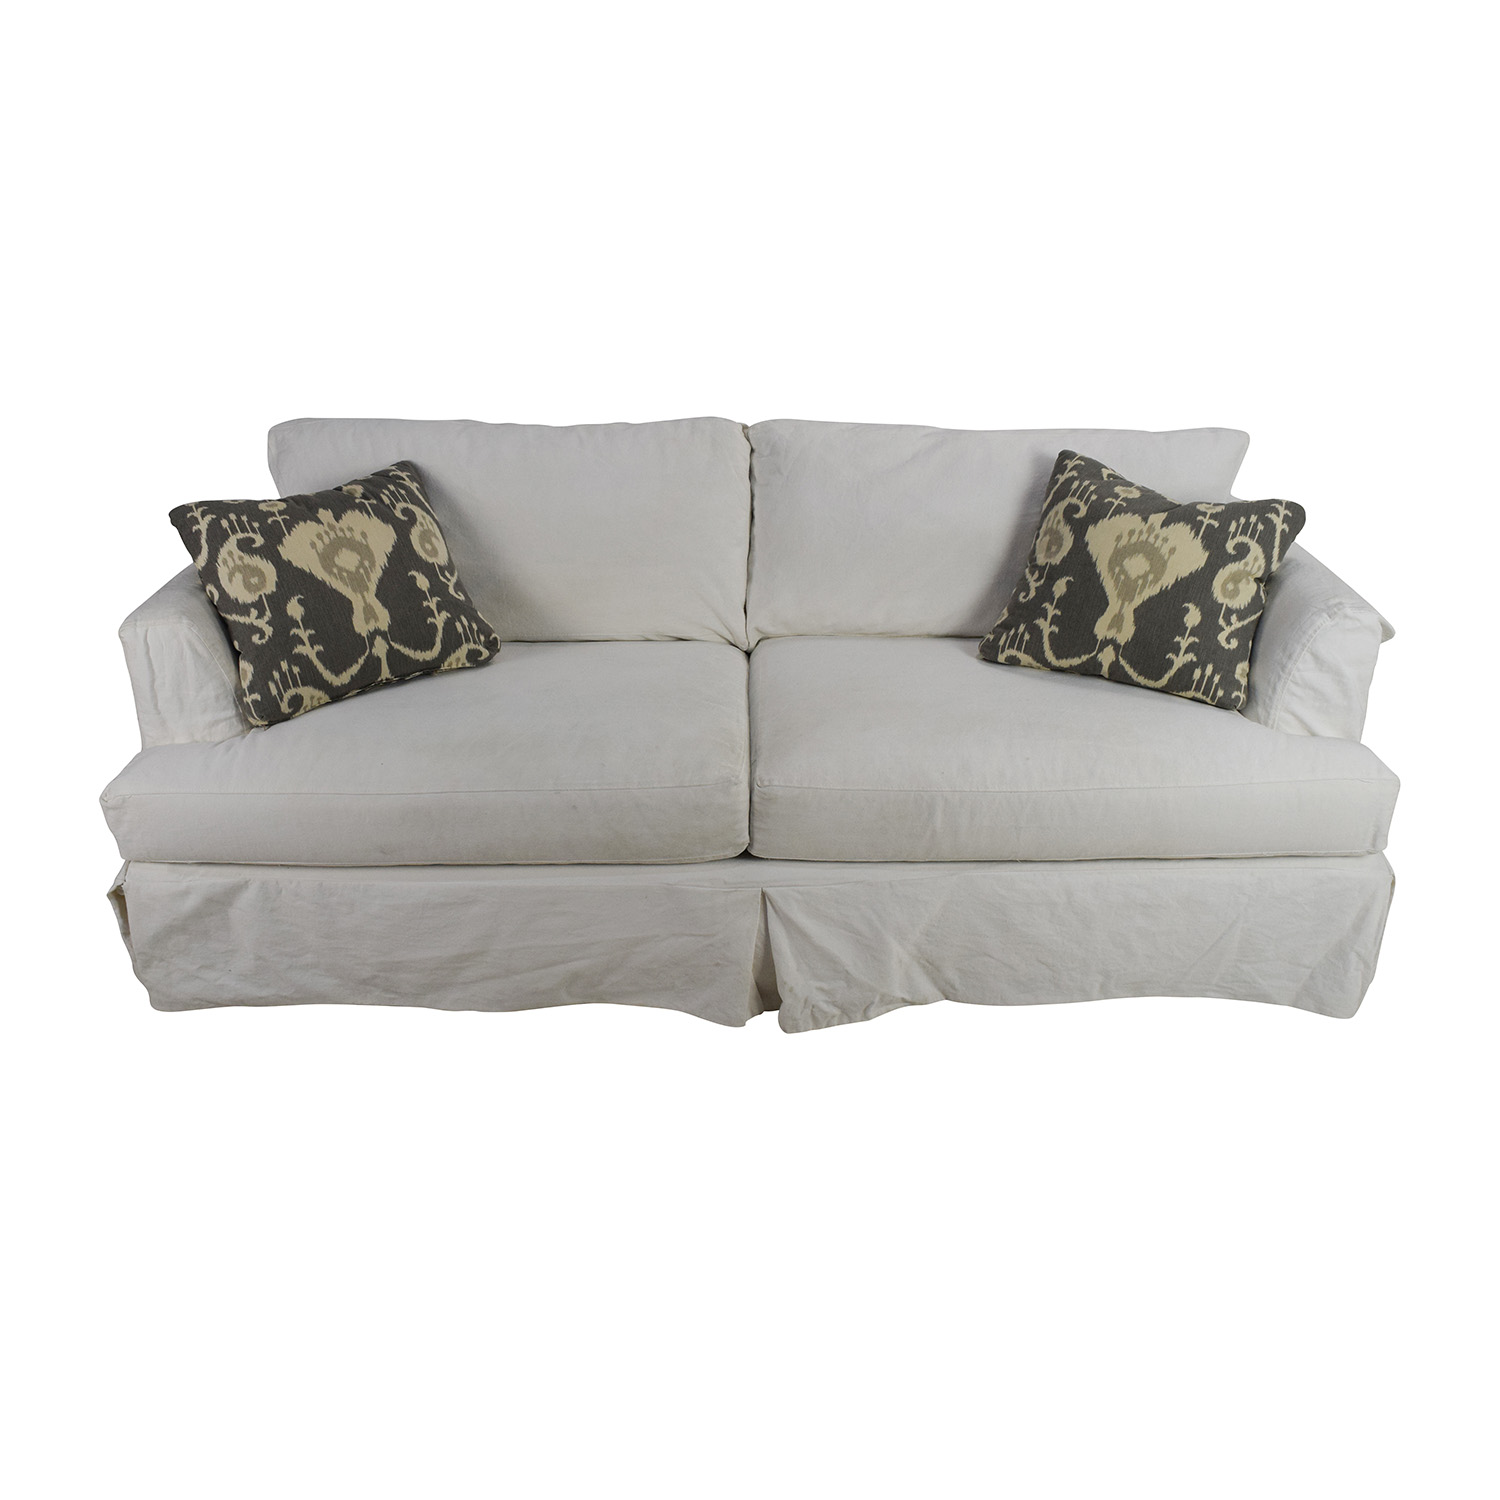 Jennifer Convertibles Melissa Slipcovered Sofa sale